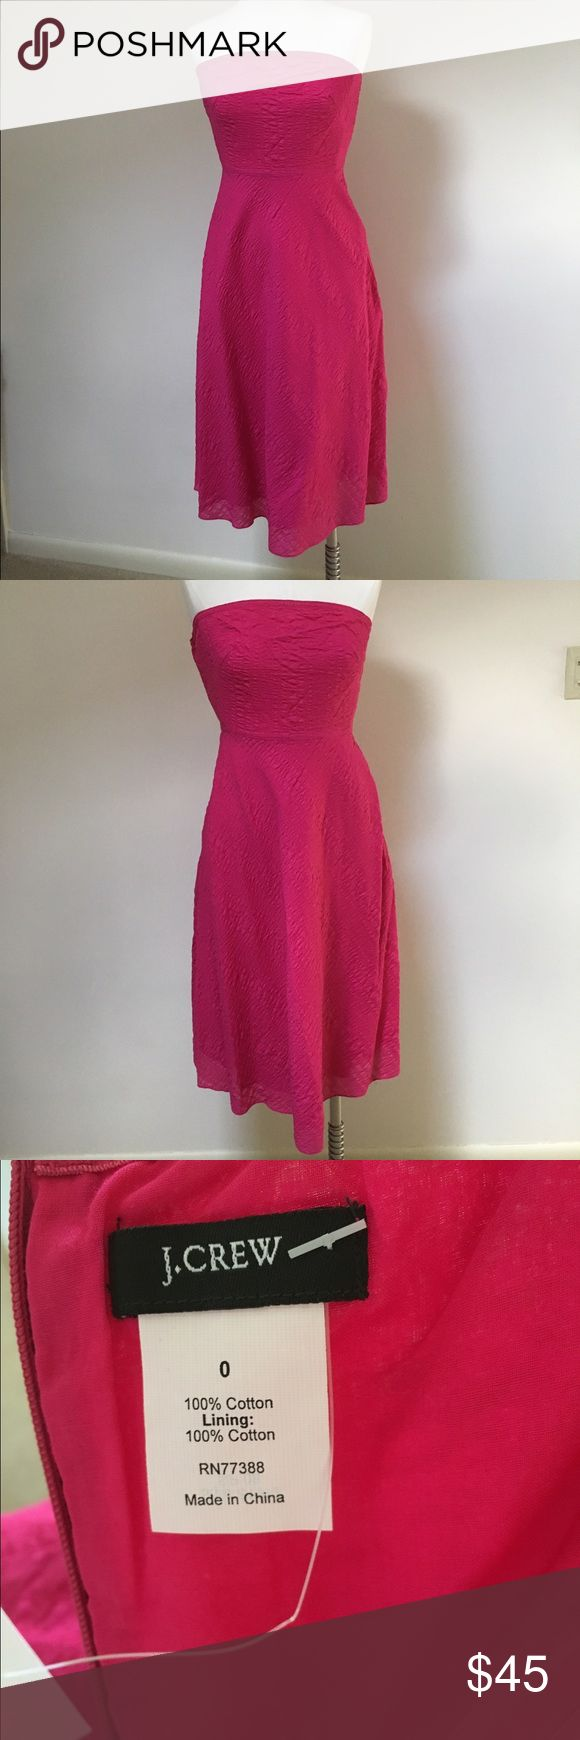 J.Crew Dress Brand new with tags. Classic, strapless, cotton a-line dress in a stunning magenta. Perfect for Easter, weddings, graduation. Dress up or down. J. Crew Dresses Strapless